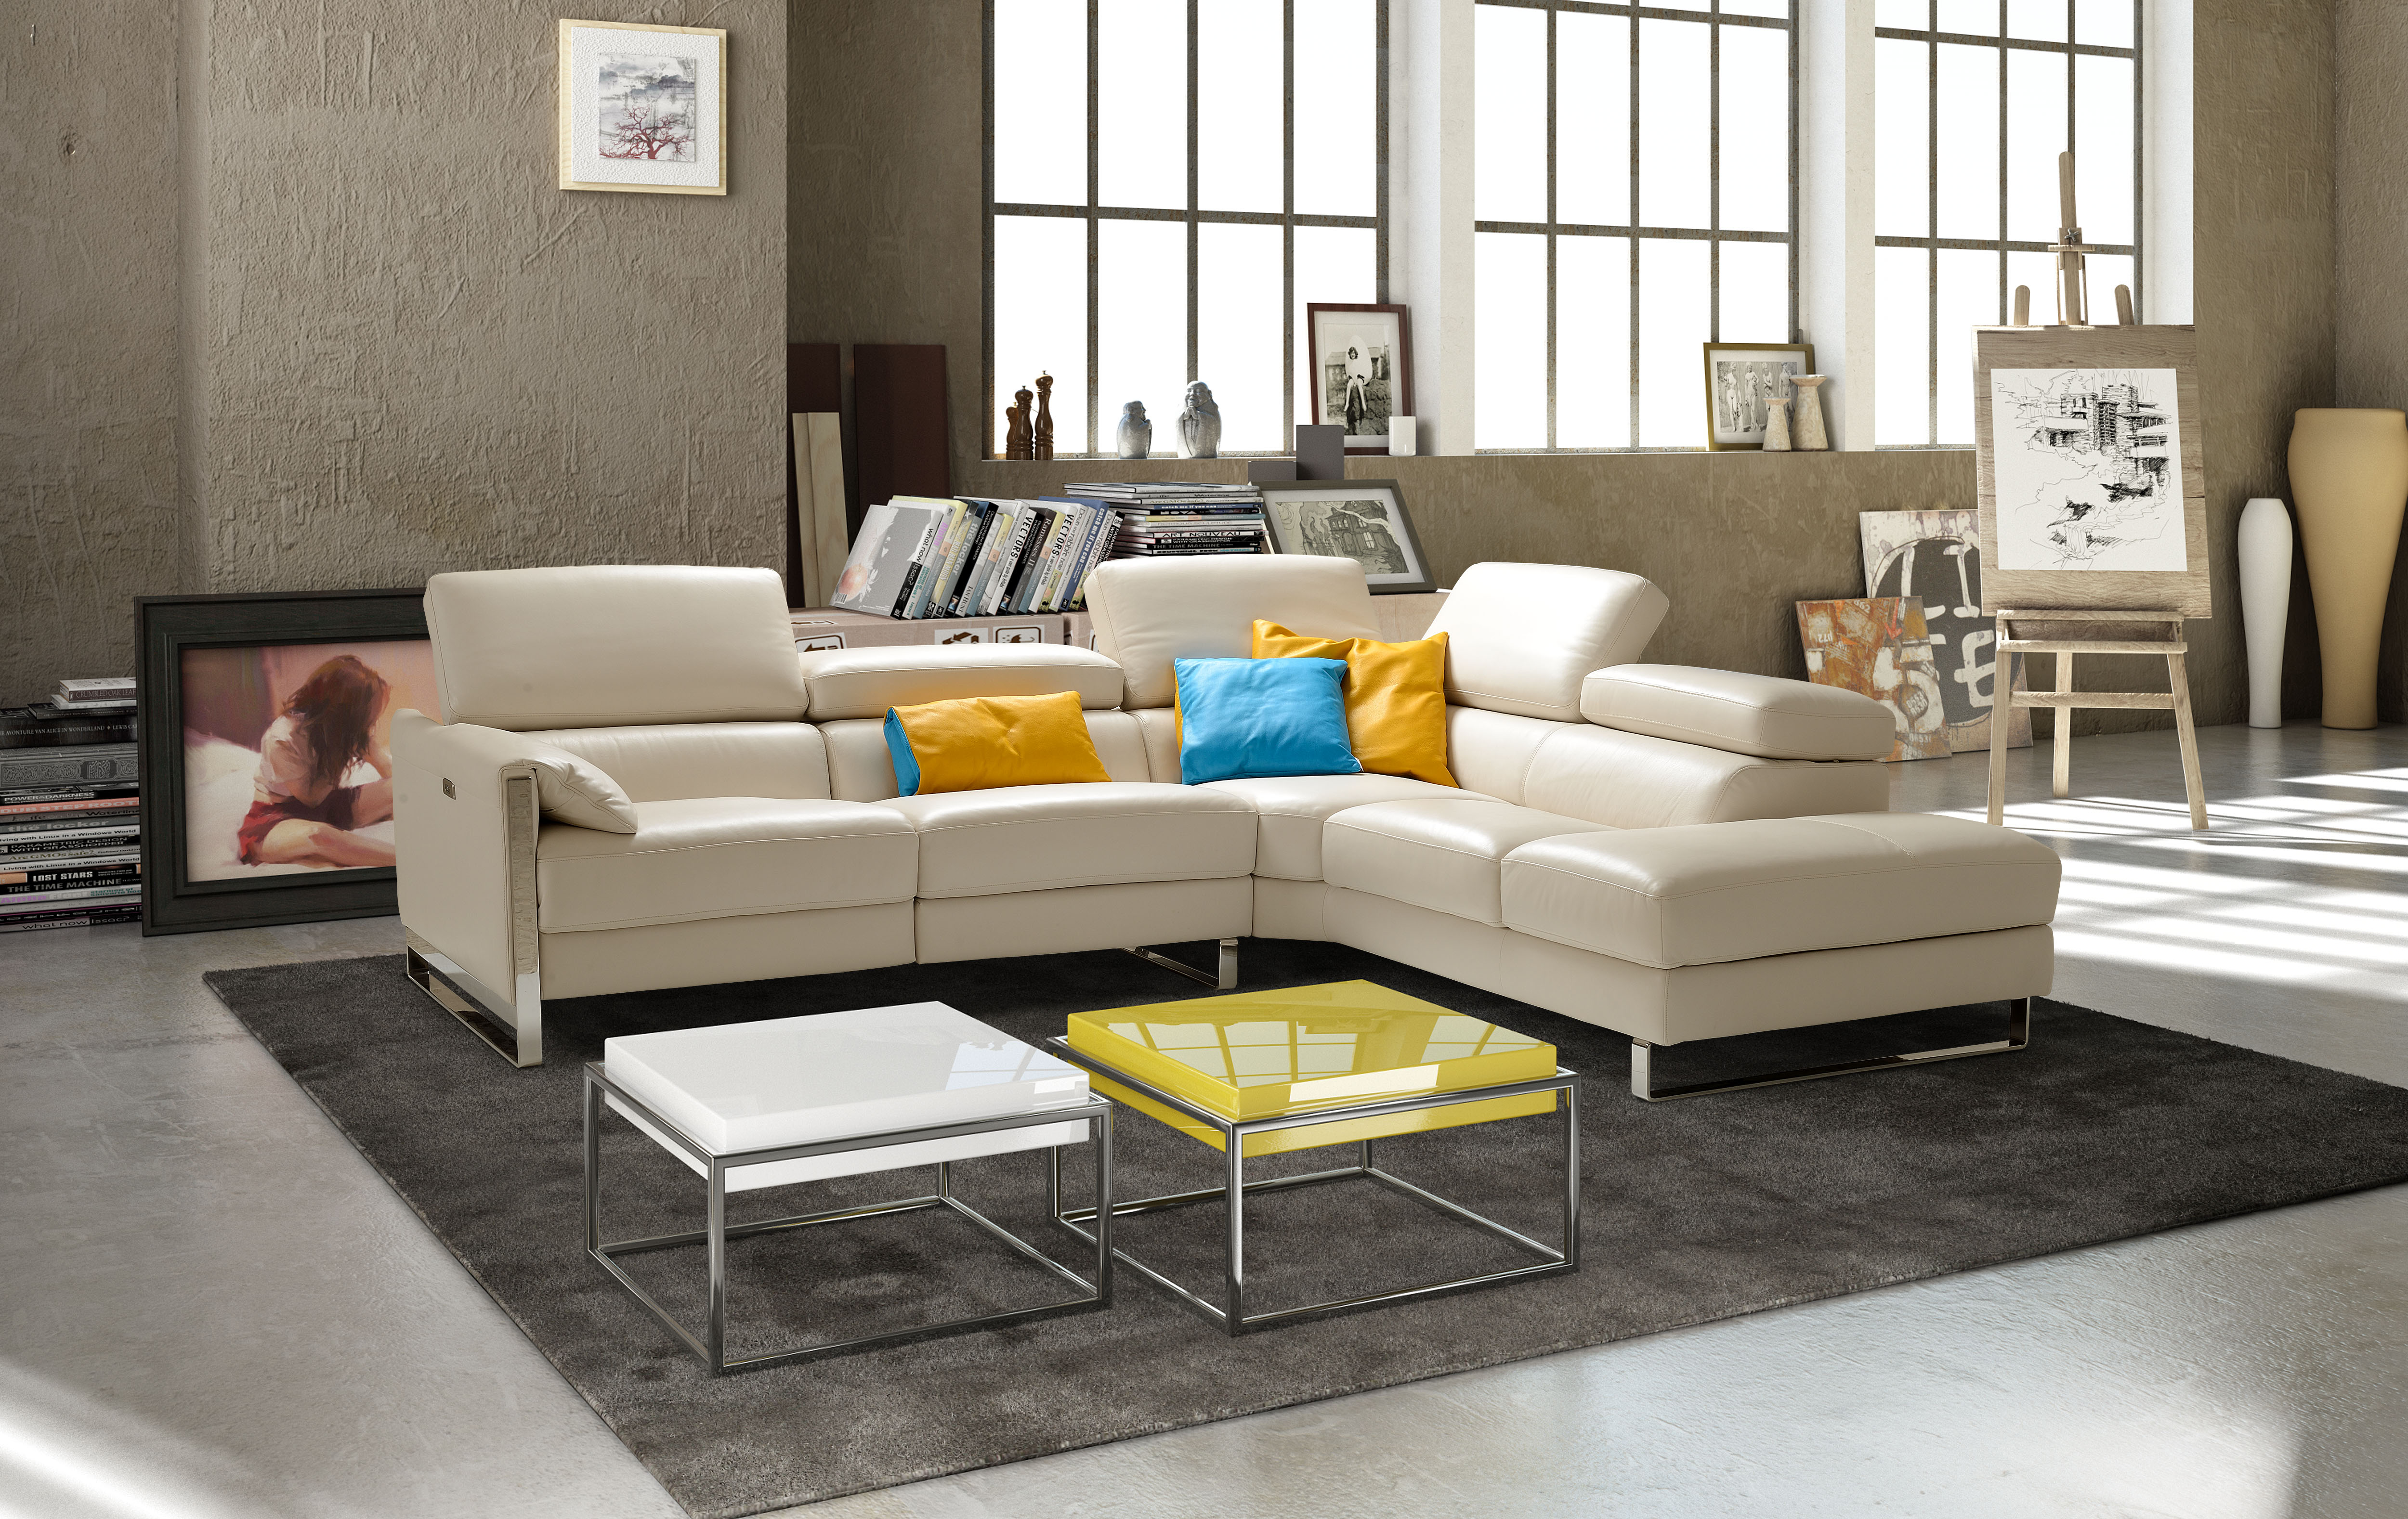 Sophisticated Modern Leather L-shape Sectional